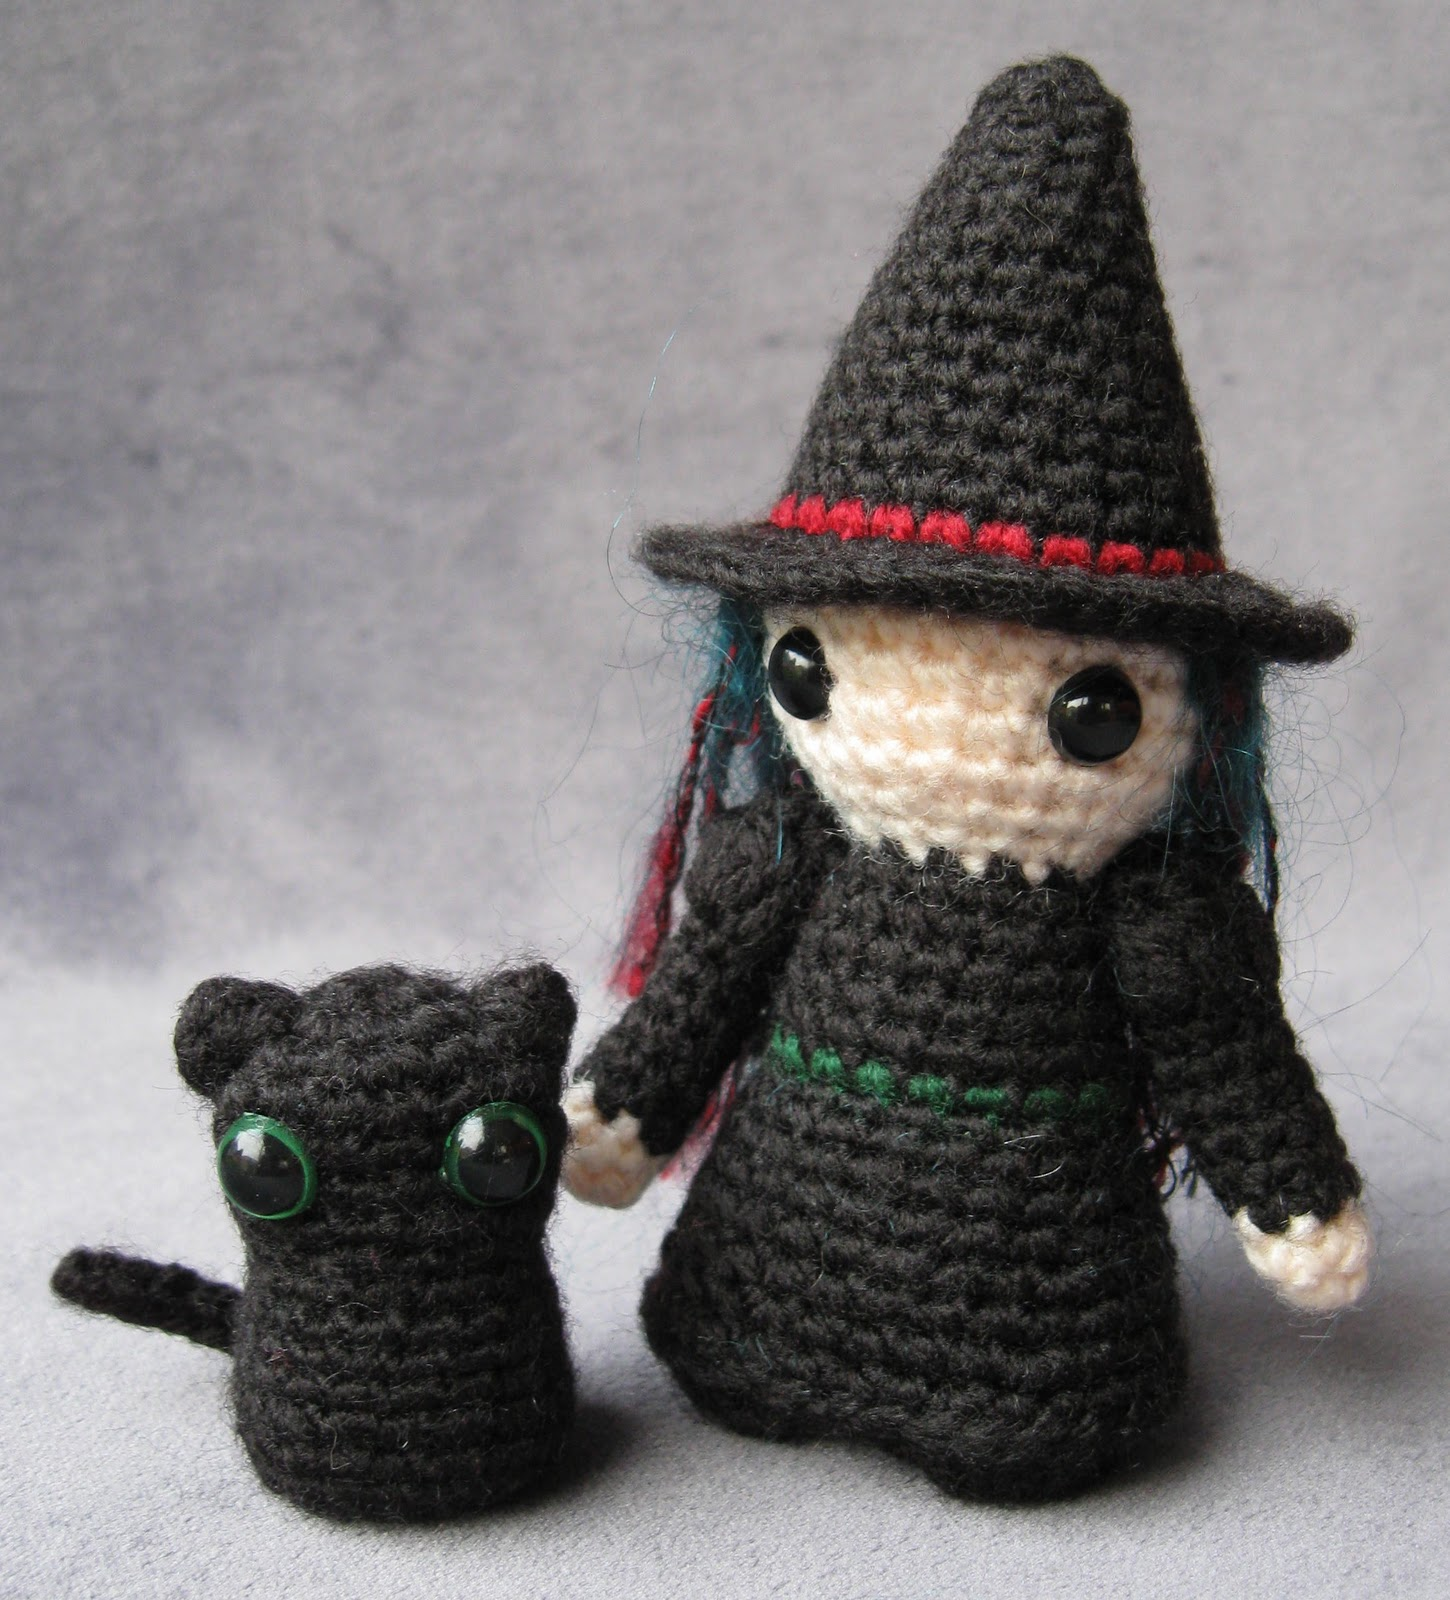 Amigurumi Black Cat Pattern : LucyRavenscar - Crochet Creatures: November 2010